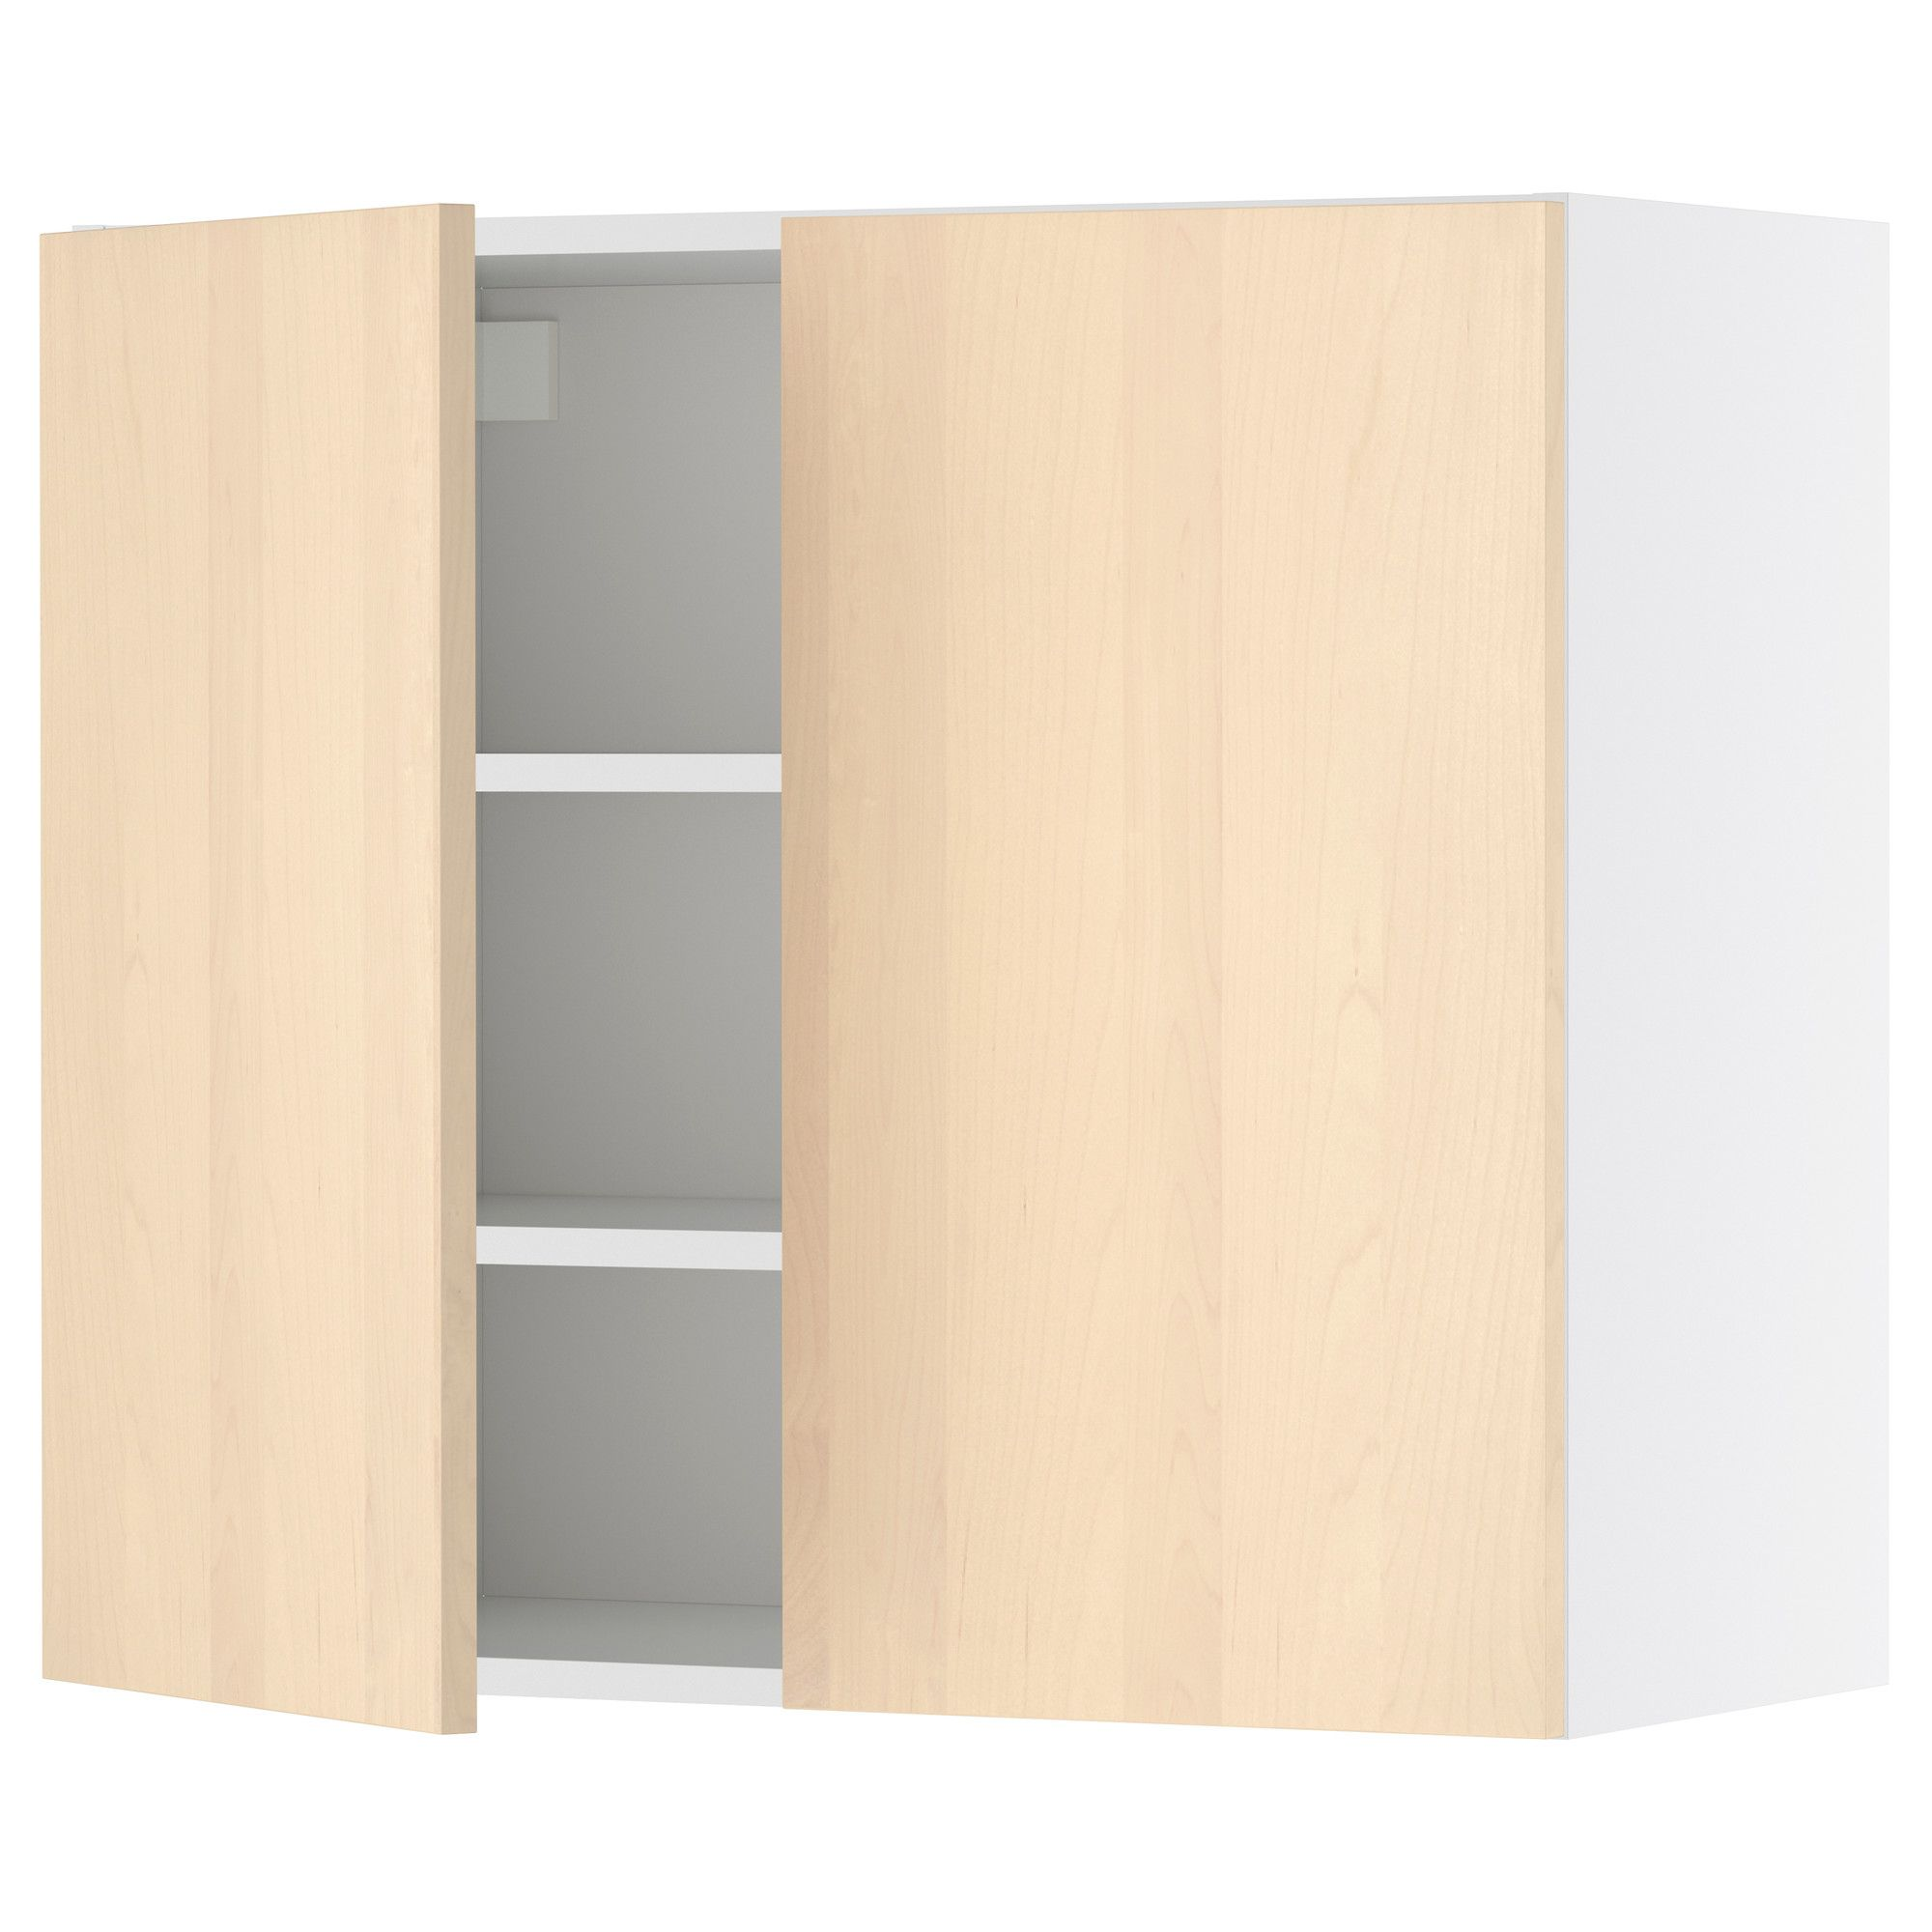 Ikea Küche 60x70 Faktum Wall Cabinet With 2 Doors Nexus Birch Veneer